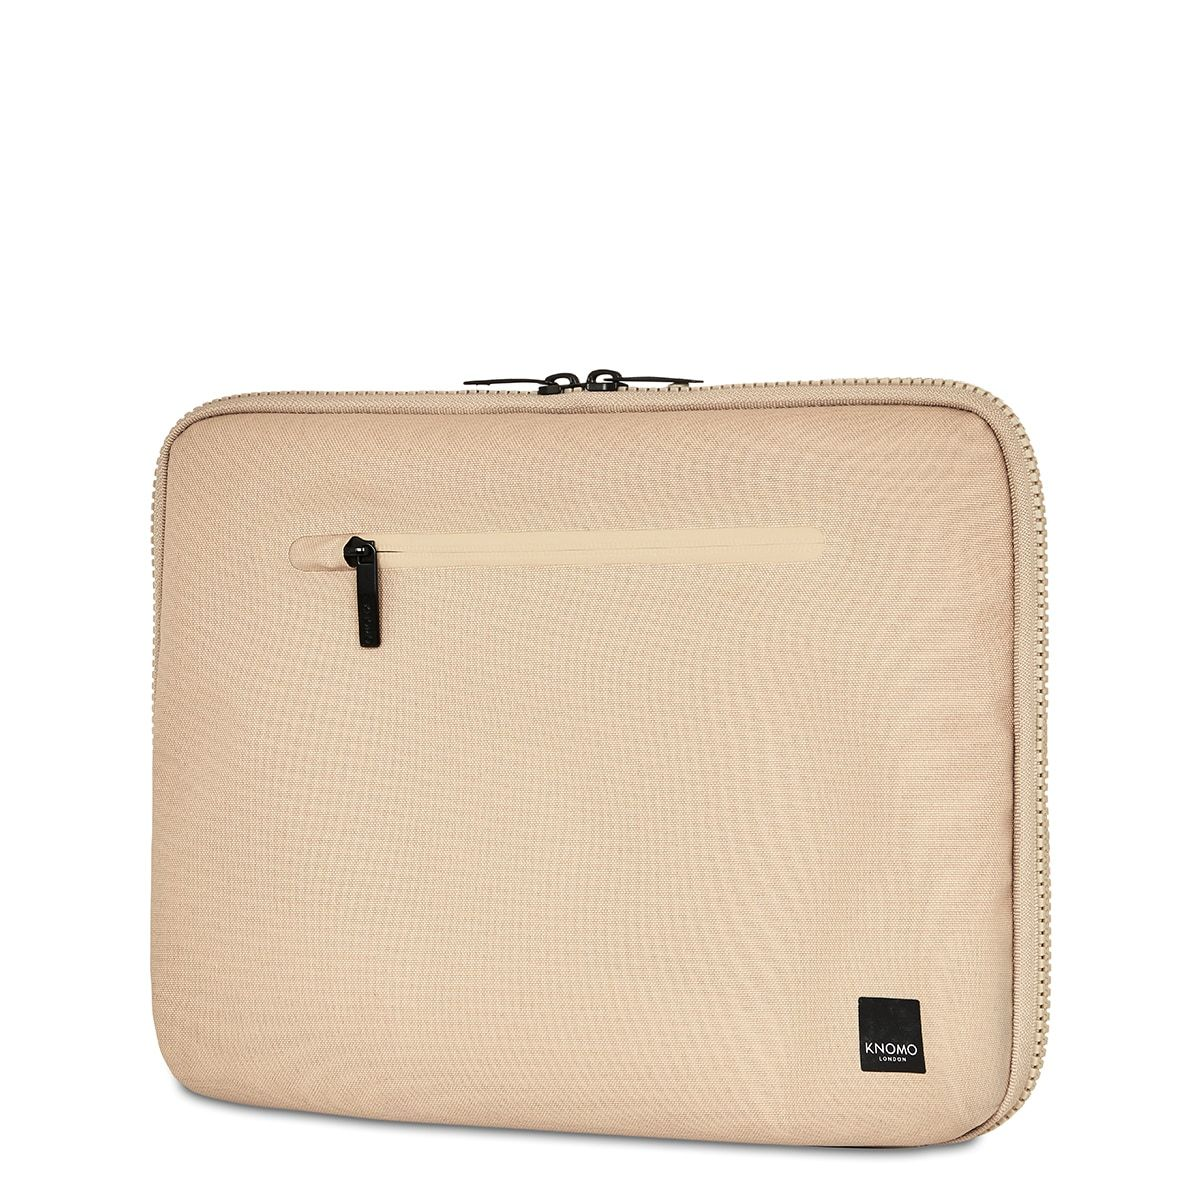 "KNOMO Thames Knomad Organiser Tech Organiser Three Quarter View With Strap 13"" -  Desert 